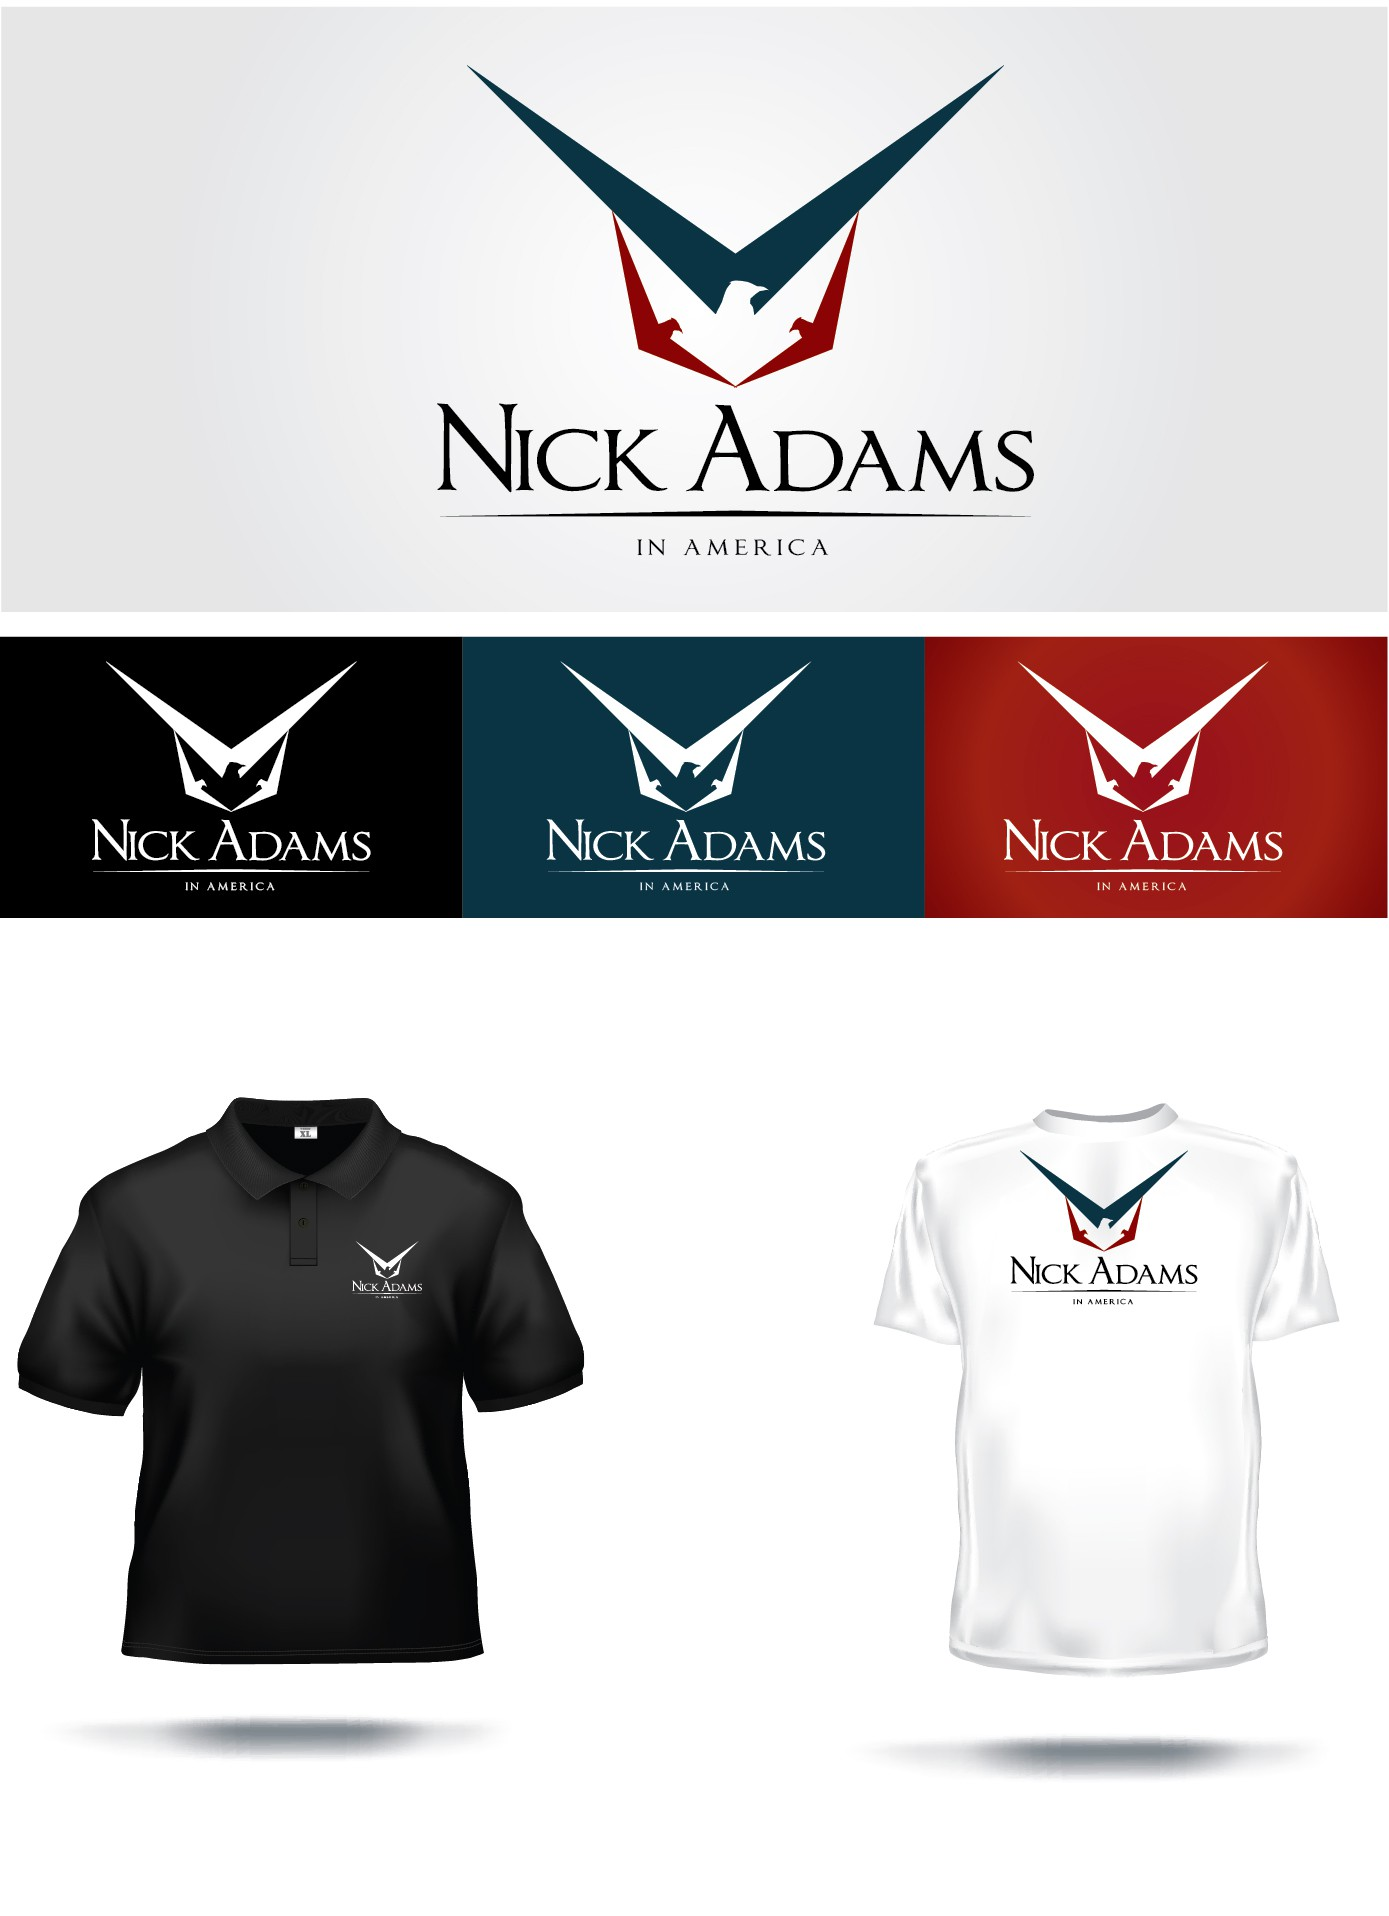 Nick Adams in America needs a new logo